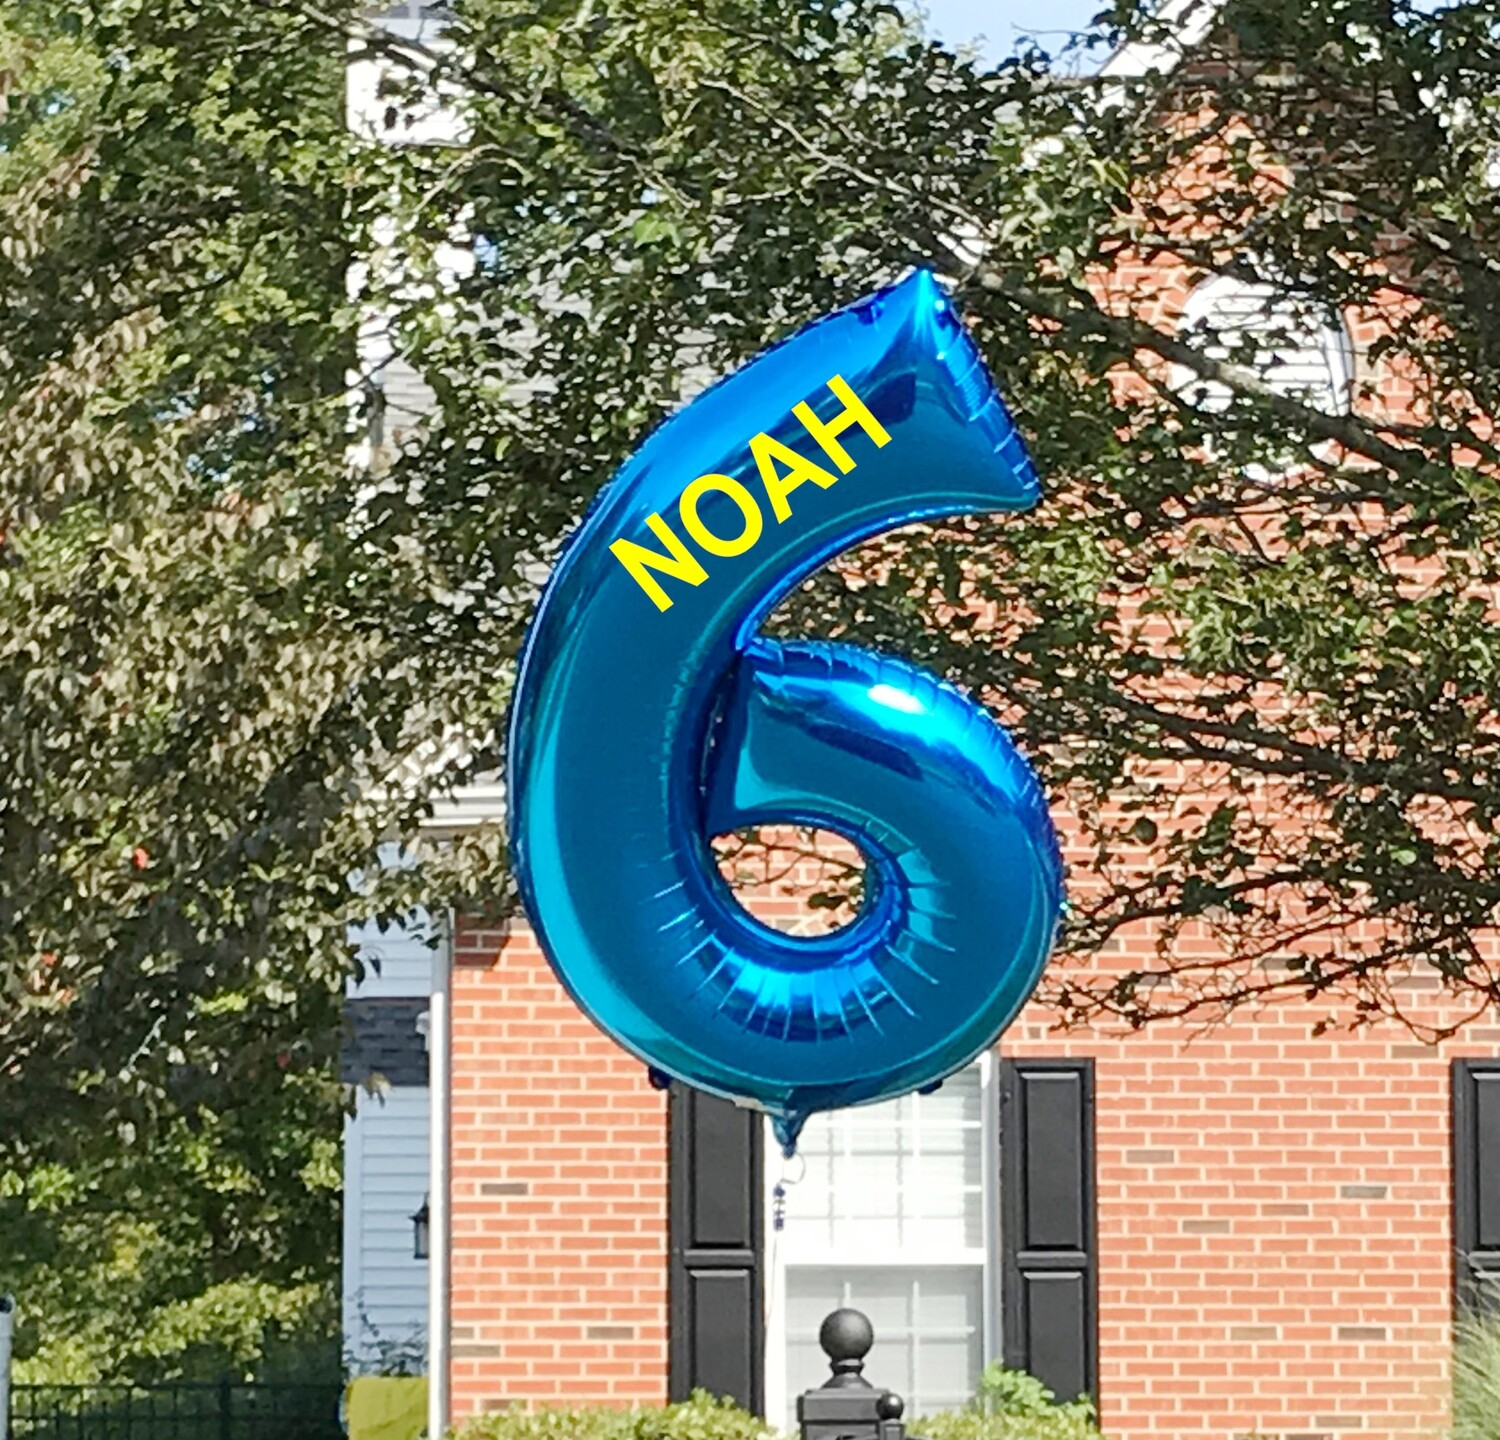 Birthday single digit number hand-held, or hoverer, centerpiece or pool float